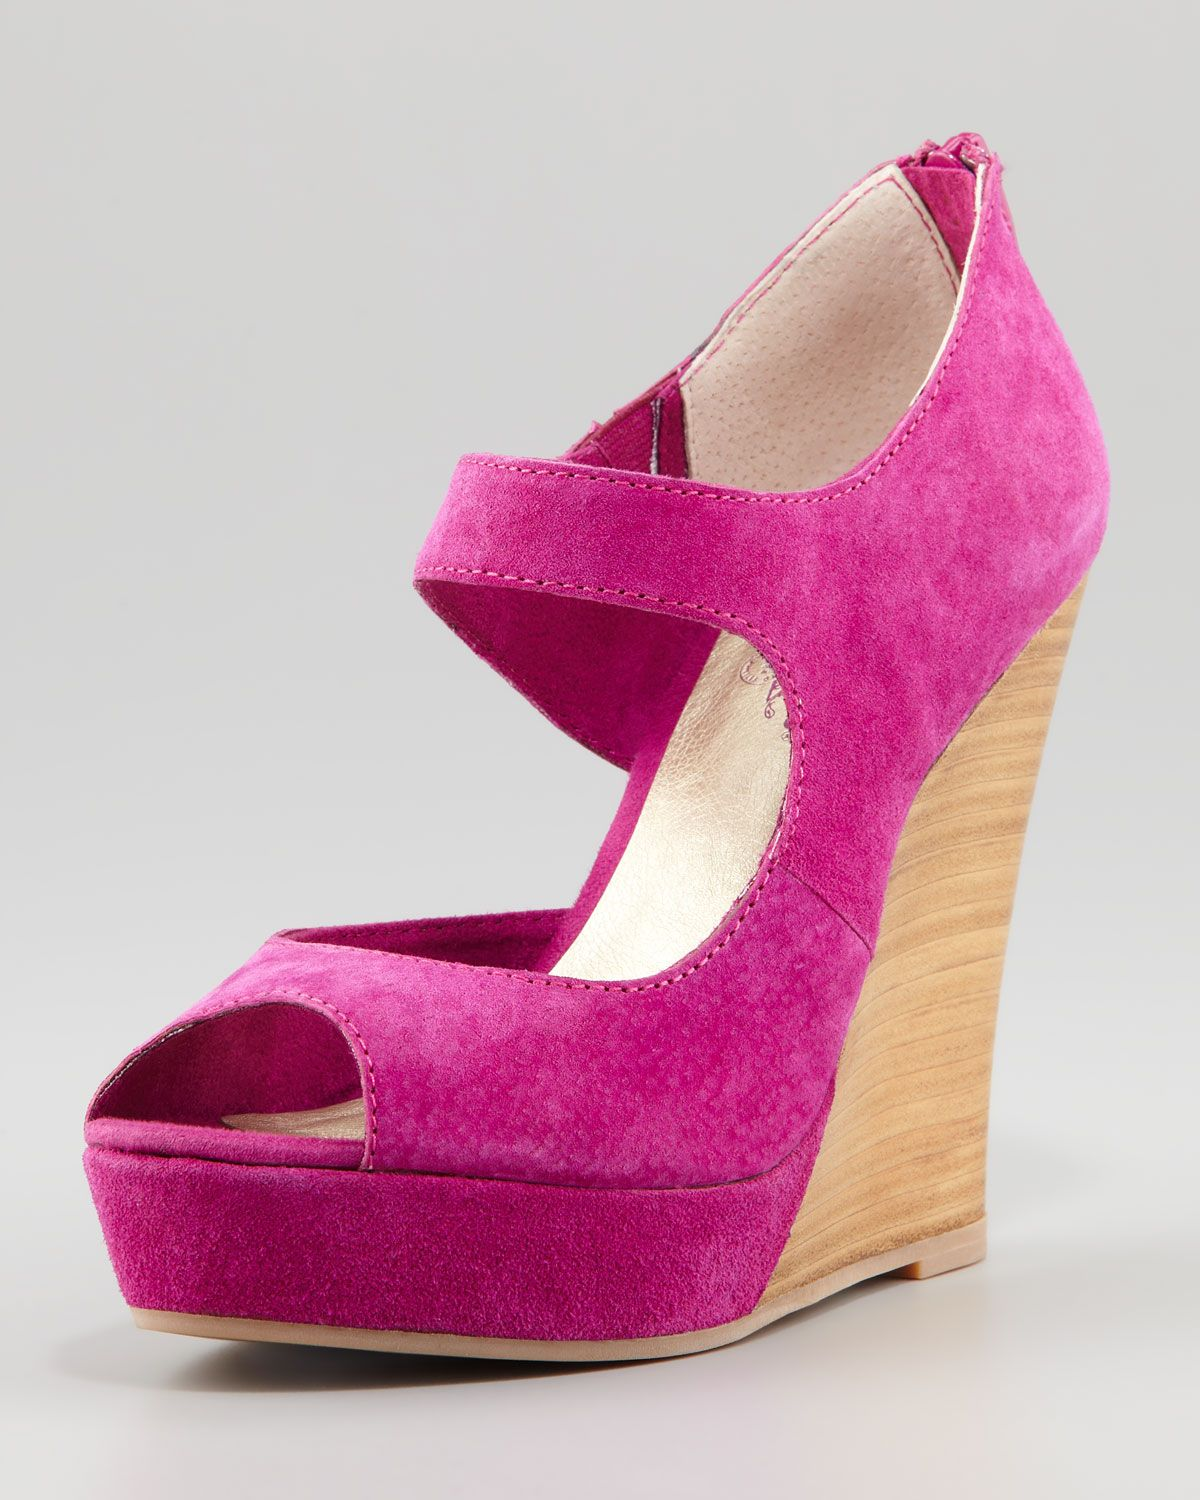 http://ncrni.com/seychelles-down-to-the-wire-wedge-sandal-plum-p-14401.html